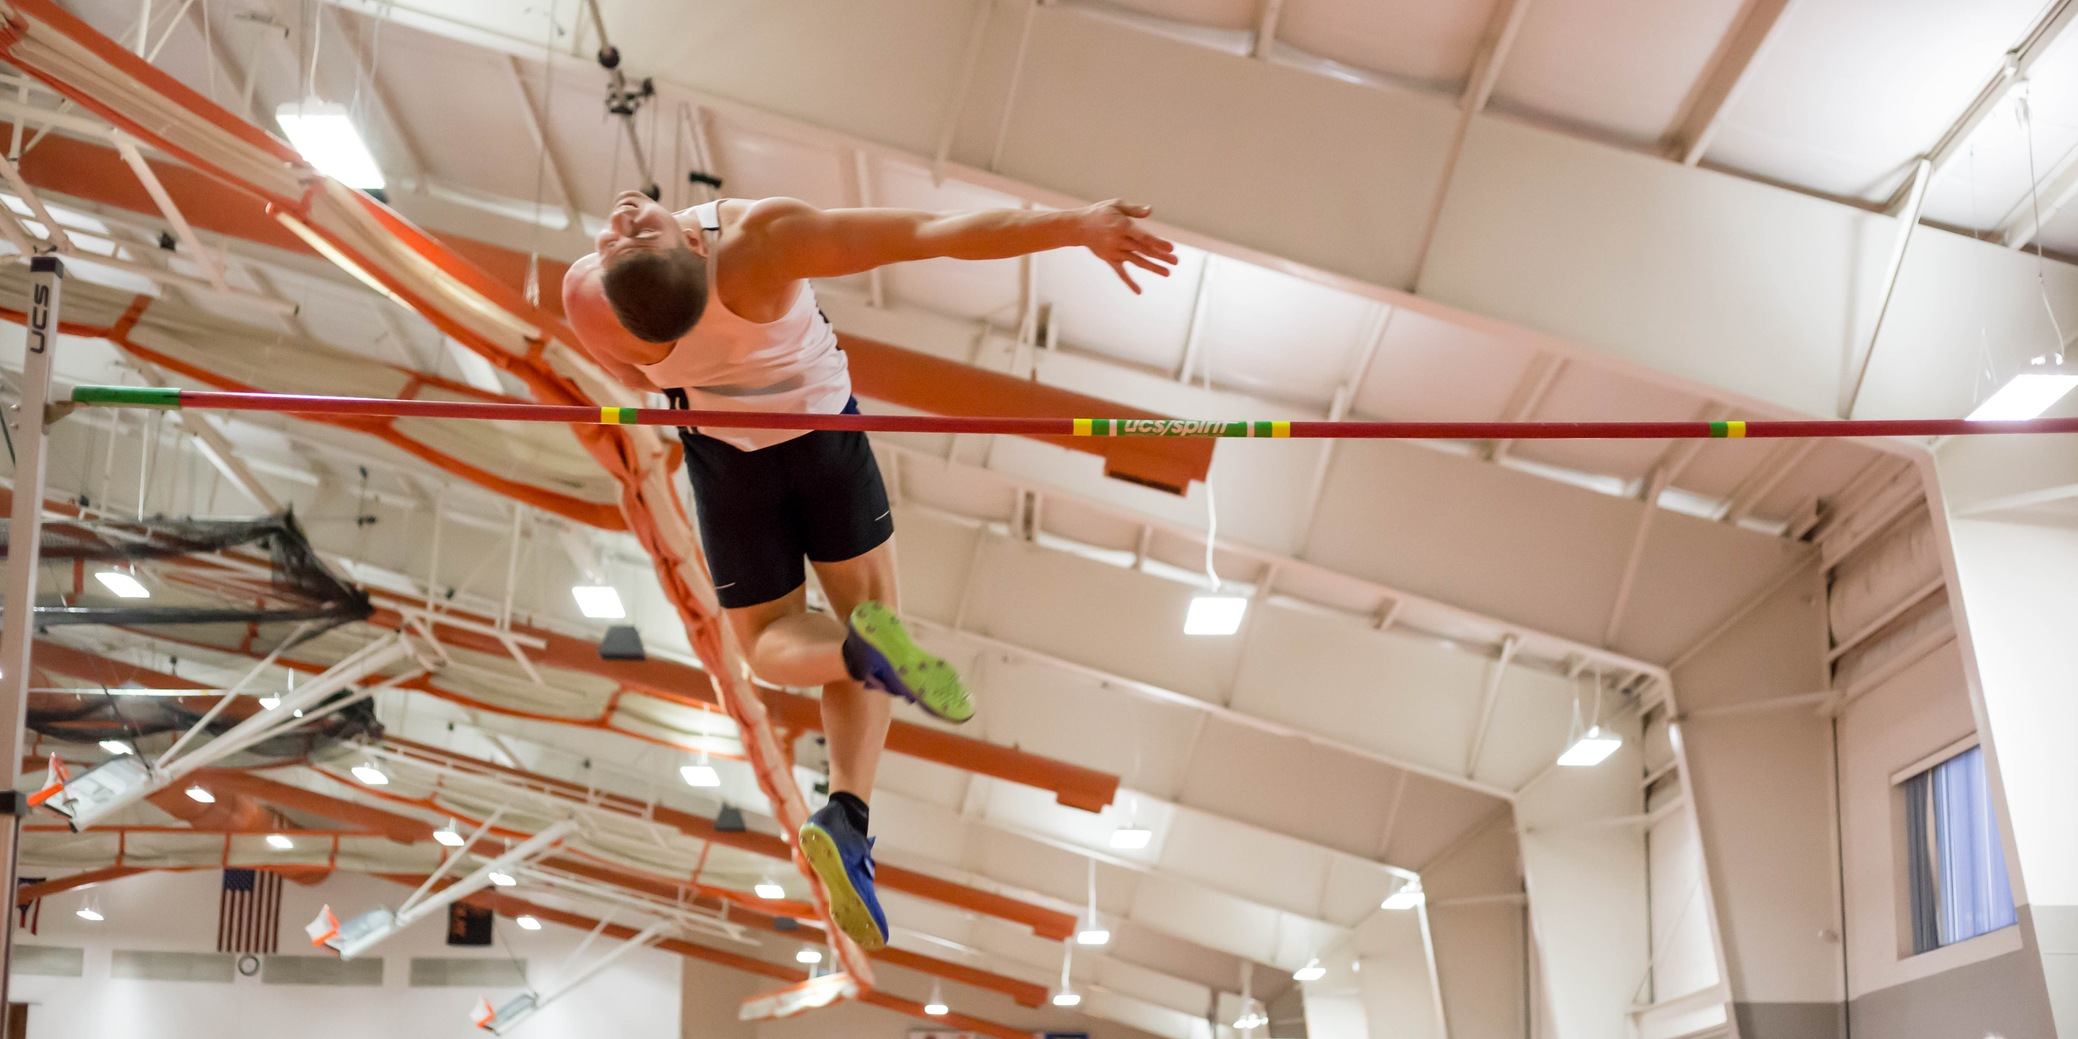 Oilers Post Solid Marks at Jesse Owens Classic